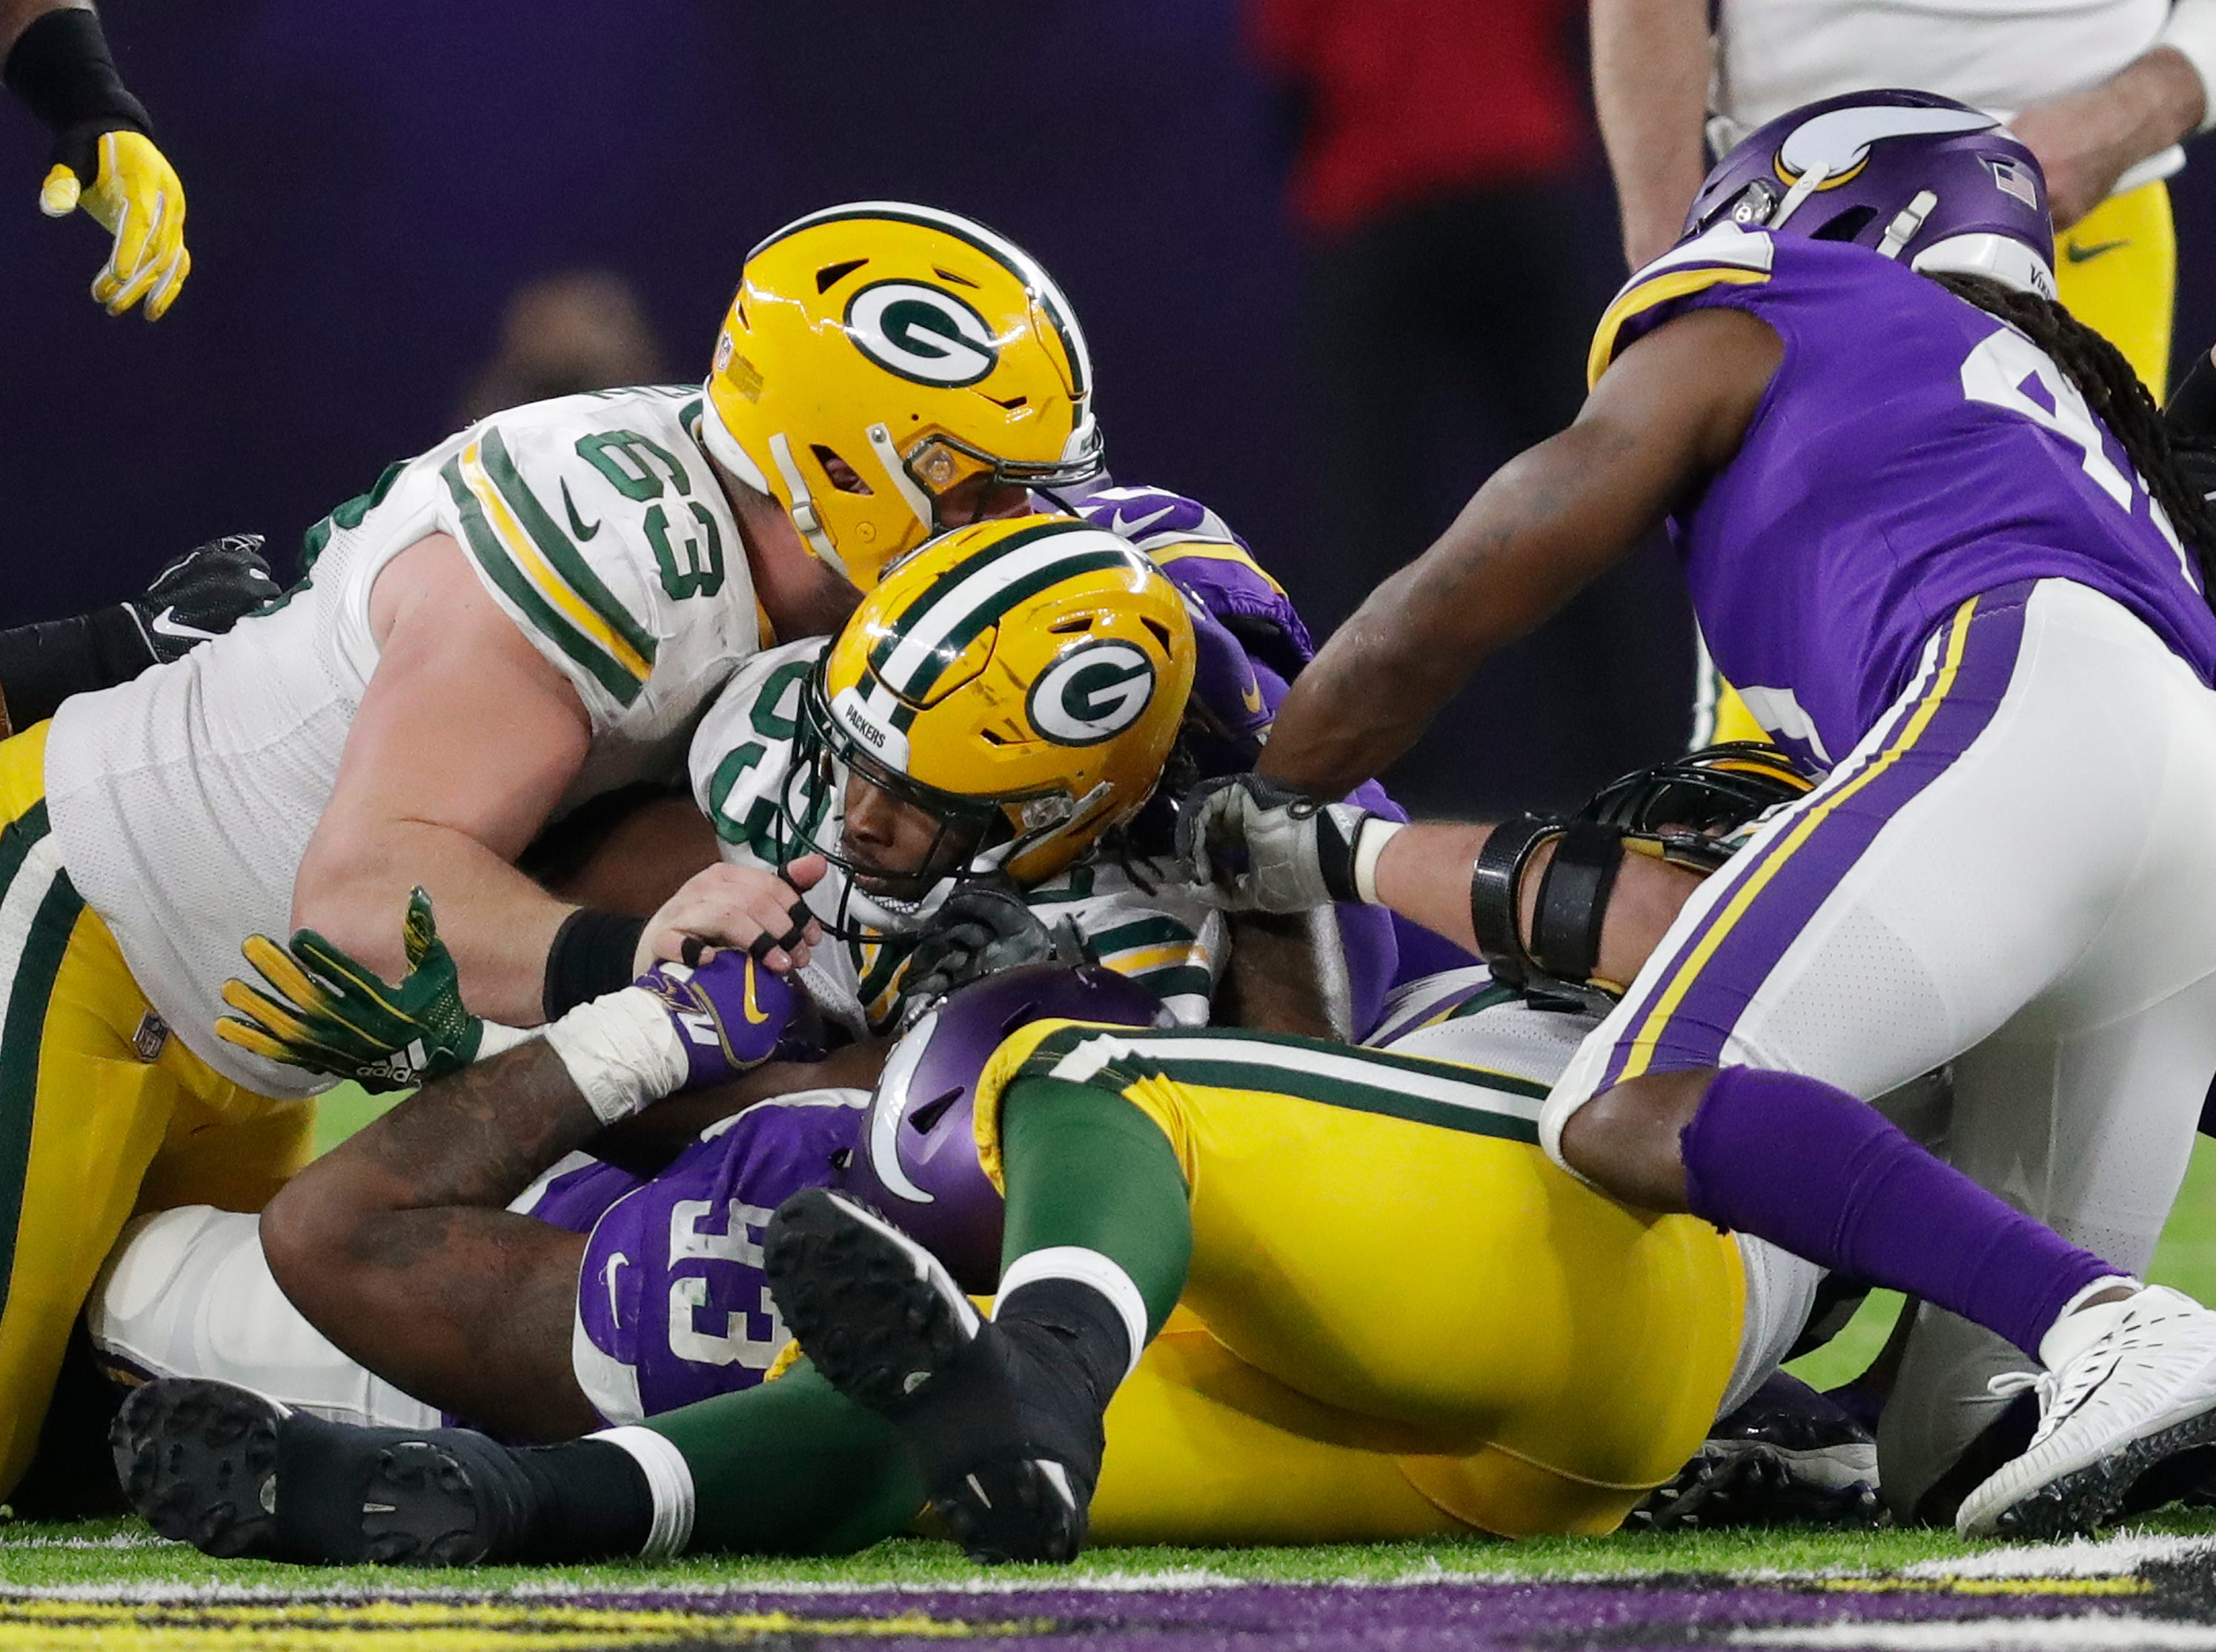 Green Bay Packers running back Aaron Jones (33) can't convert a fourth down in the fourth quarter against the Minnesota Vikings during their football game Sunday, November 25, 2018, at U.S. Bank Stadium in Minneapolis, Minn. 